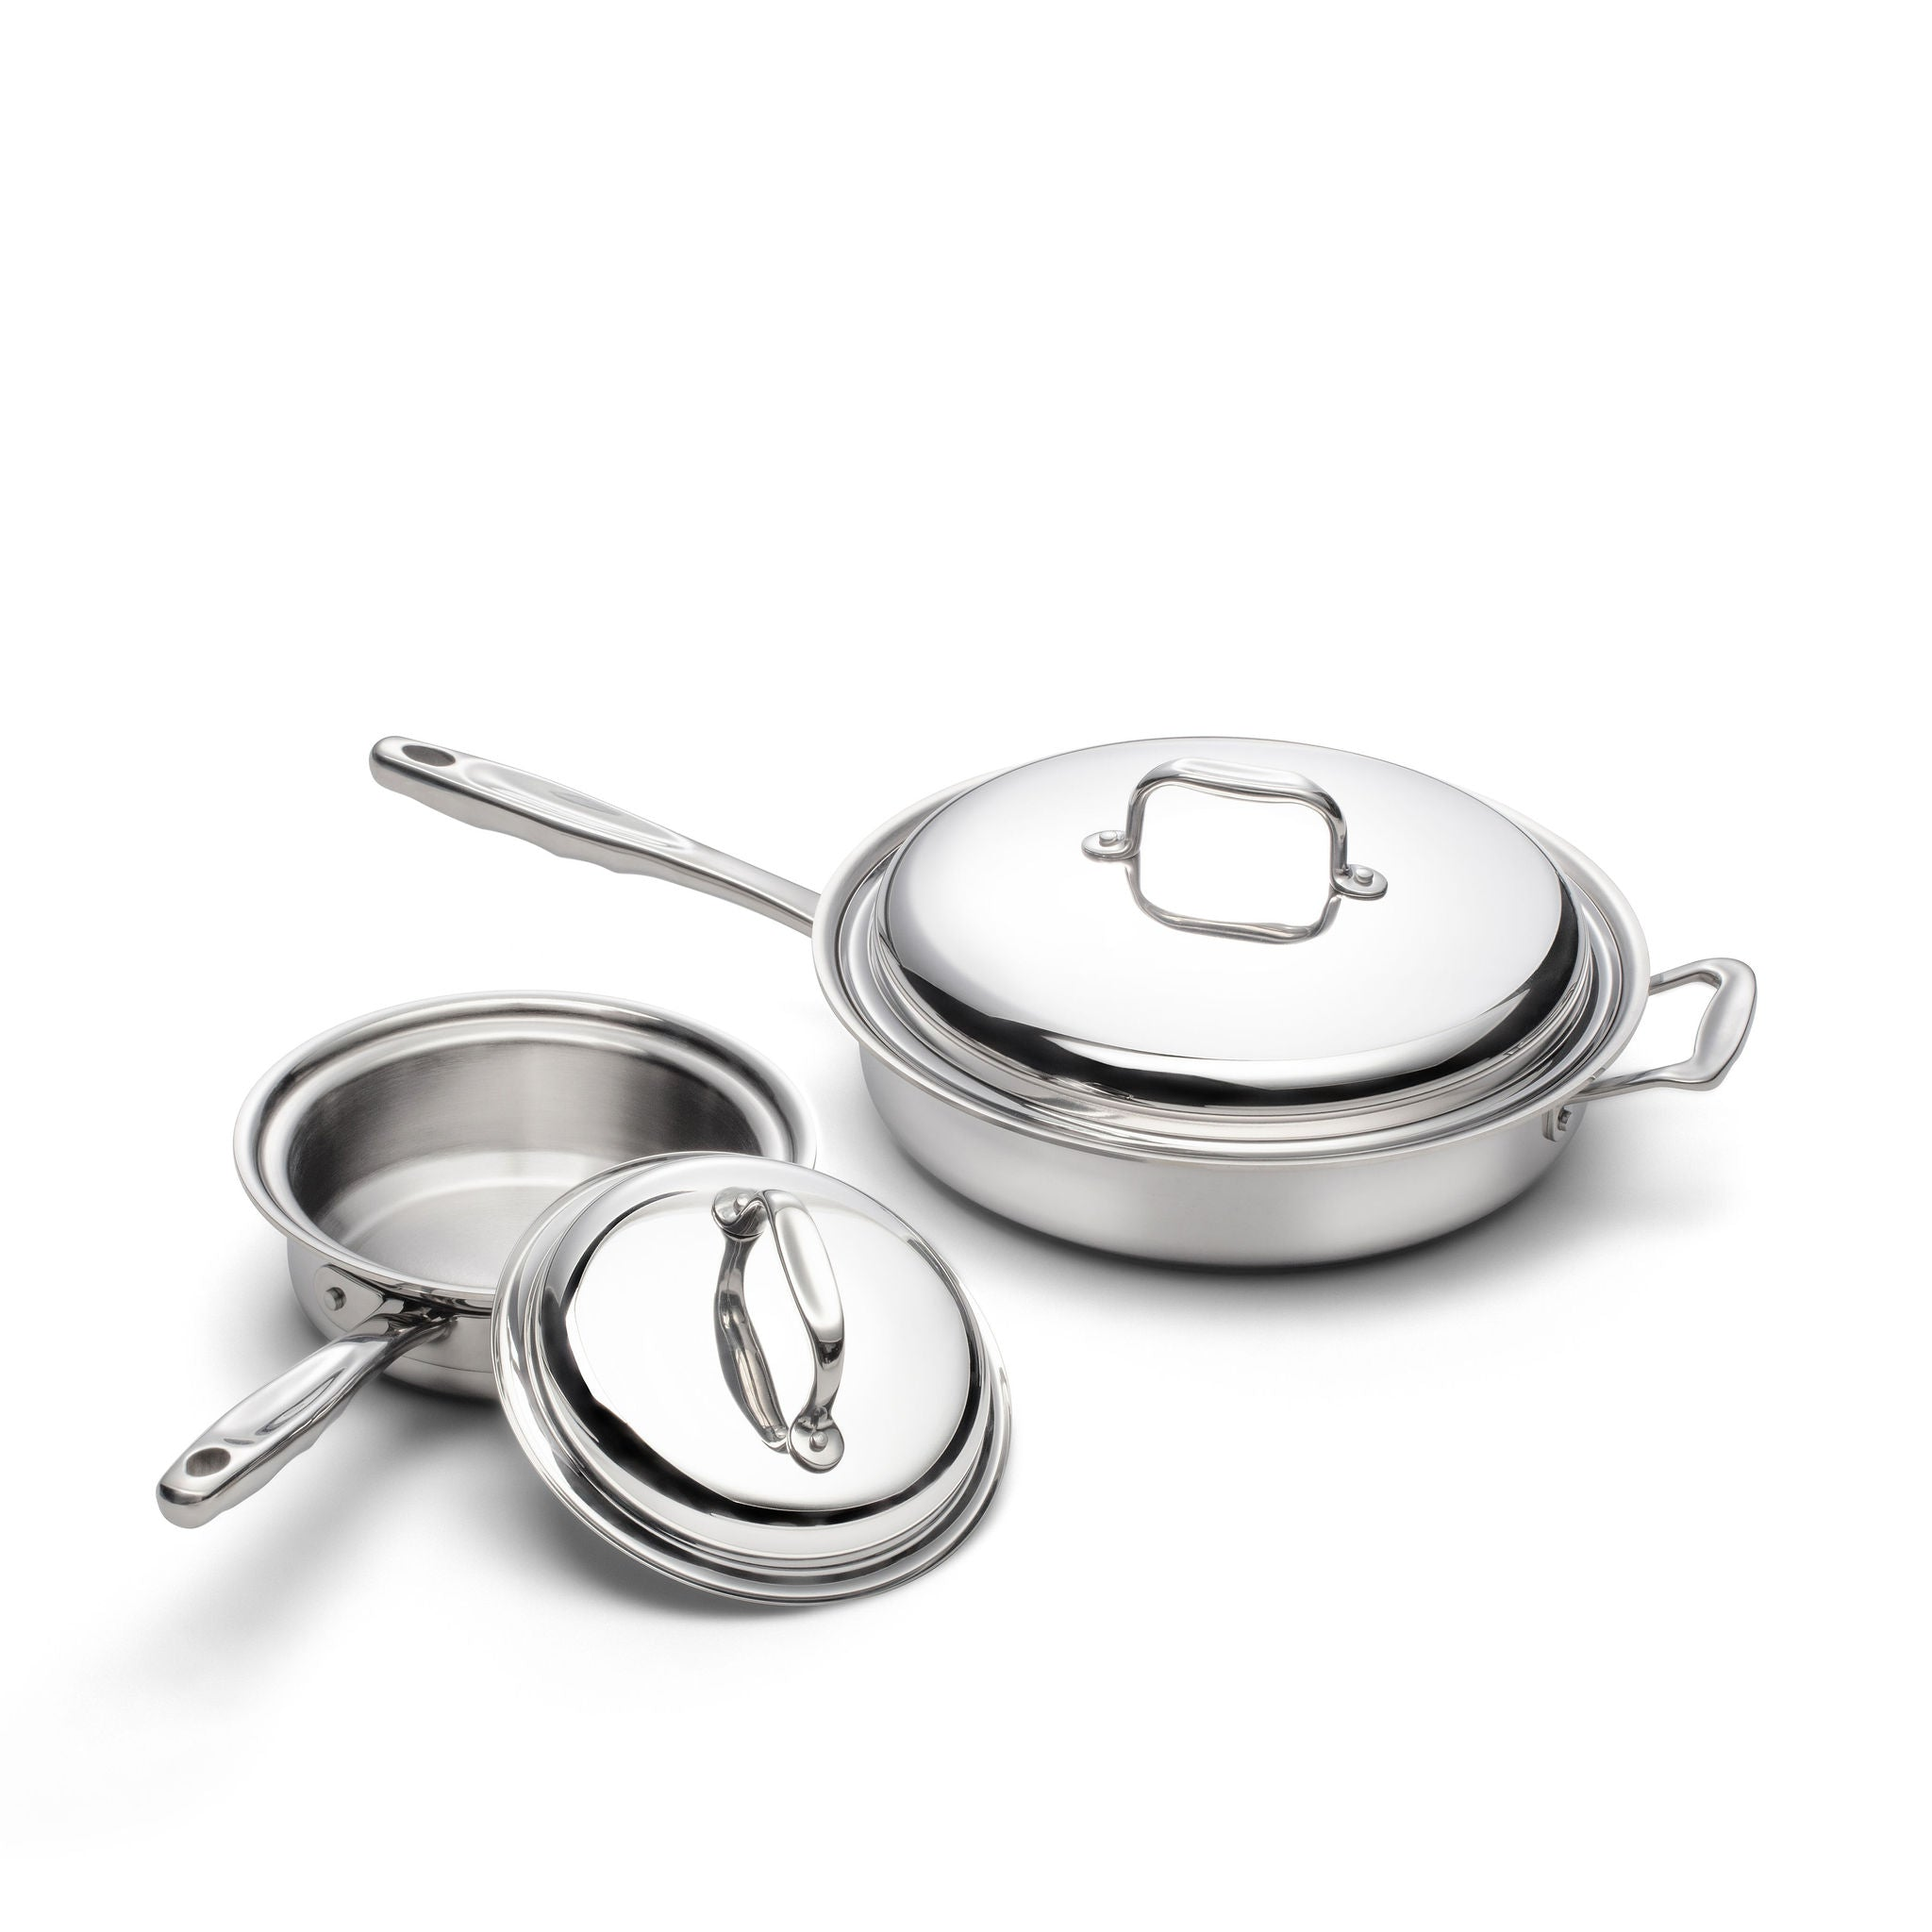 The Essentials Cookware Set